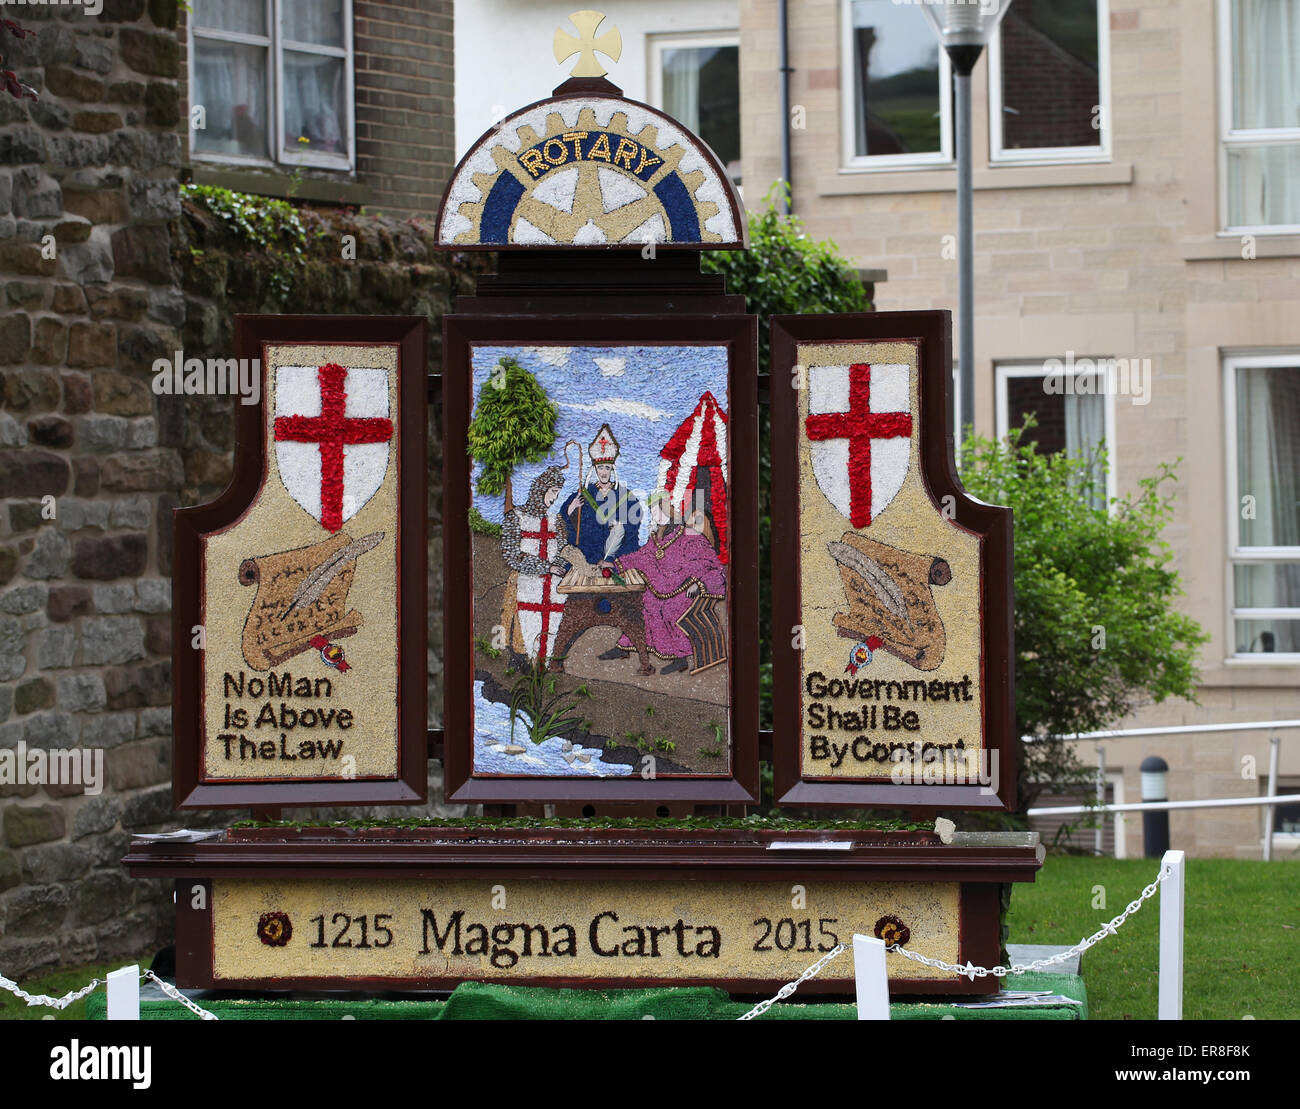 2015 Well dressing at Wirksworth in Derbyshire - Stock Image